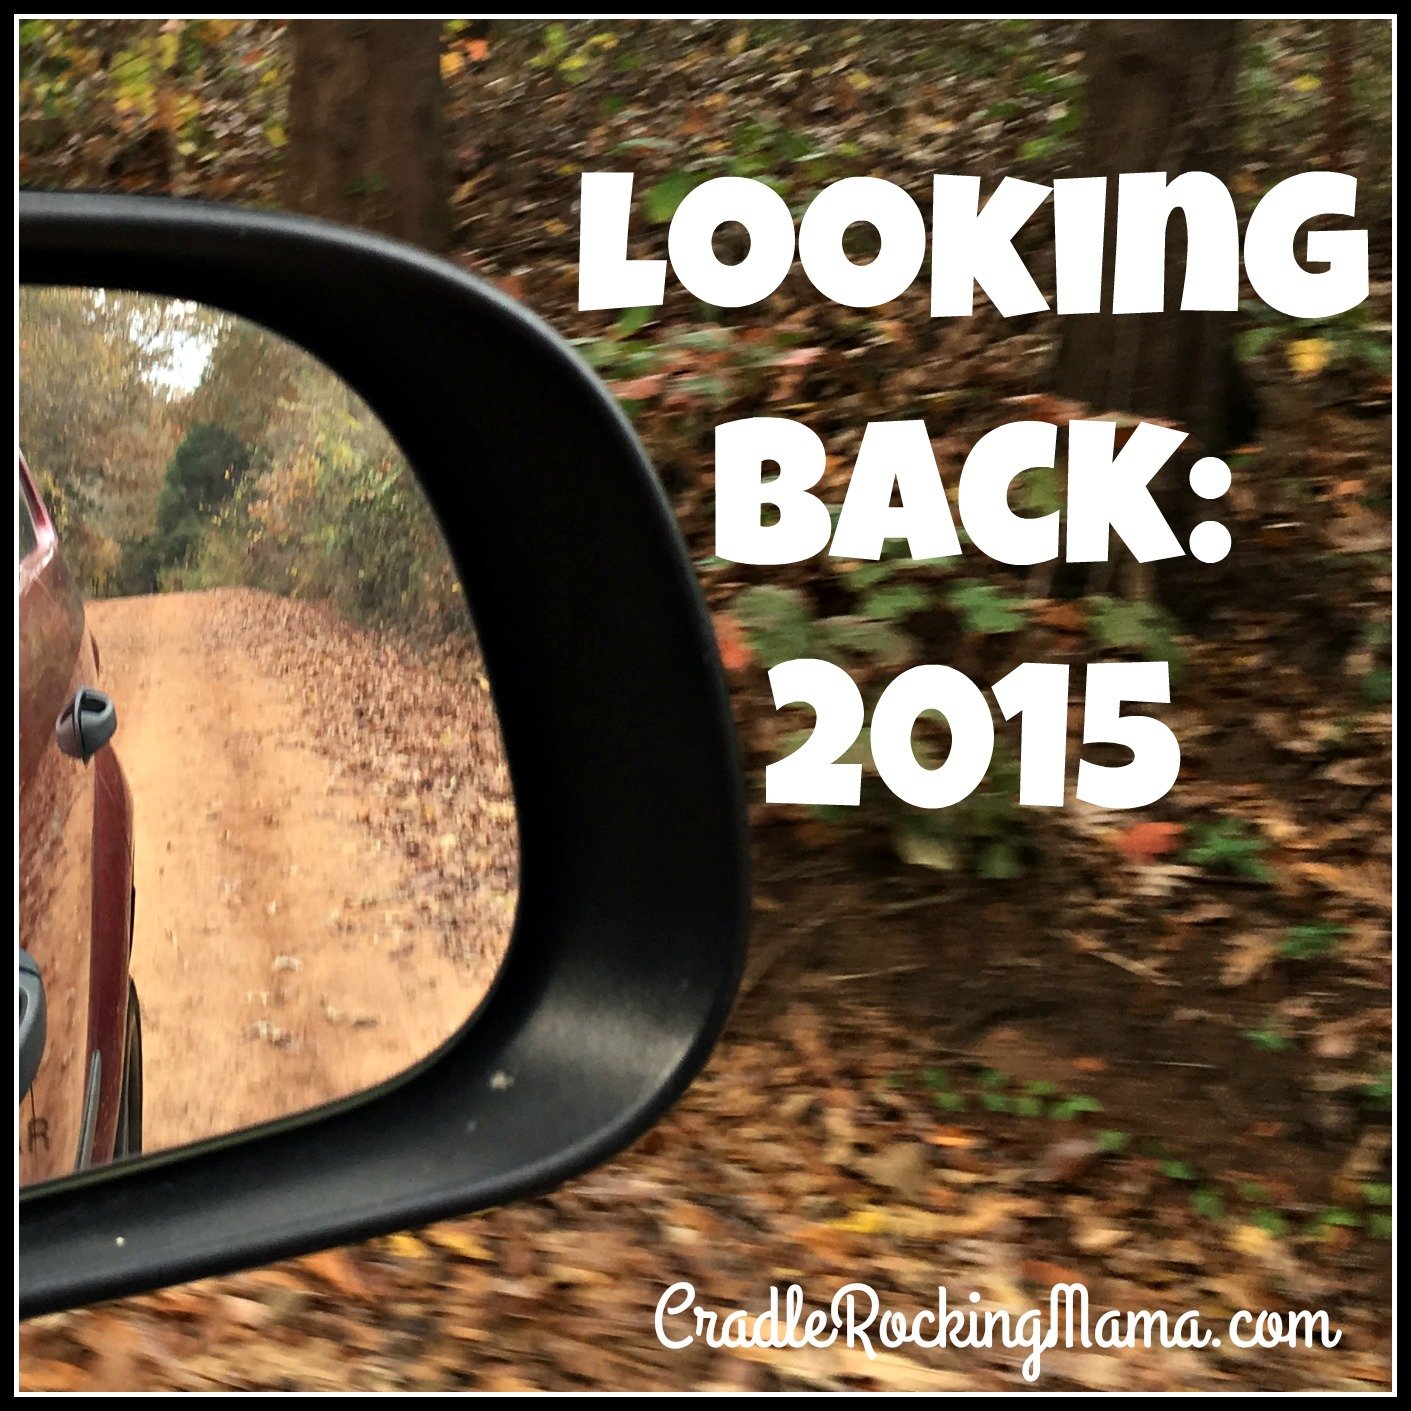 Looking Back 2015 CradleRockingMama.com